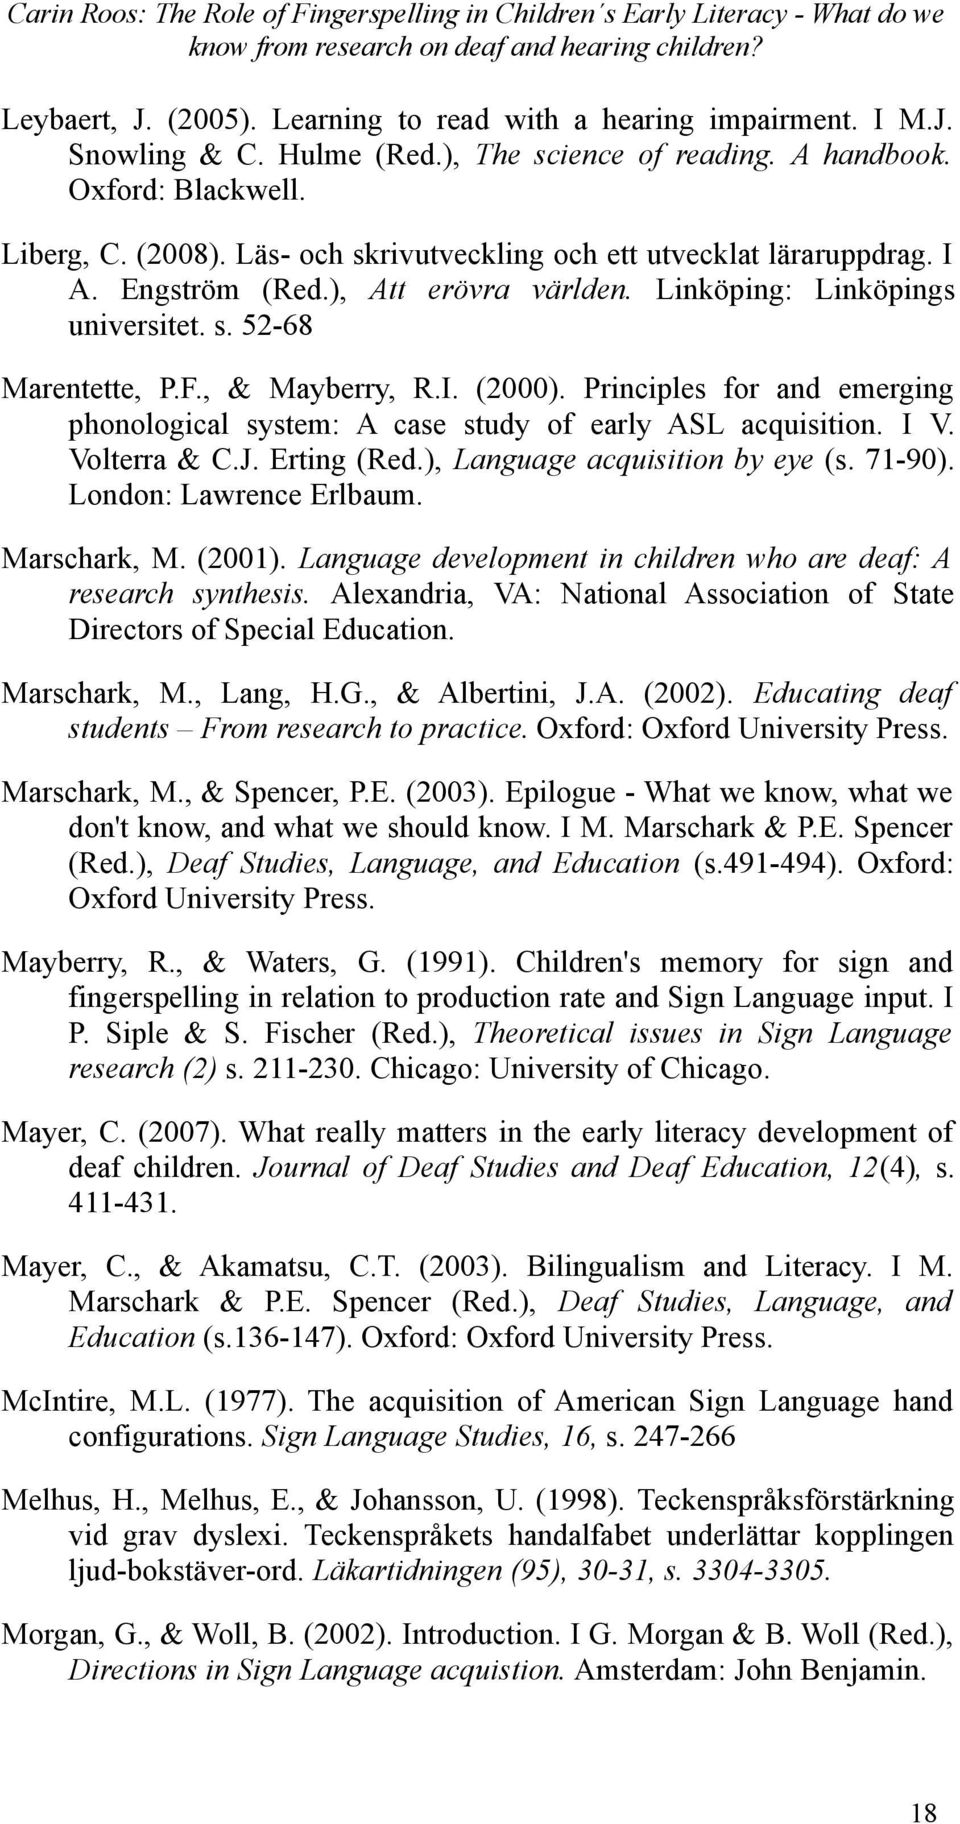 """phonological awareness essay Stanovich (1993-94) defines """"phonological awareness"""" as the ability to deal explicitly and segmentally with sound units smaller than the syllable in terms of importance, he found that phonological awareness is the best predictor of the ease of early reading acquisition."""